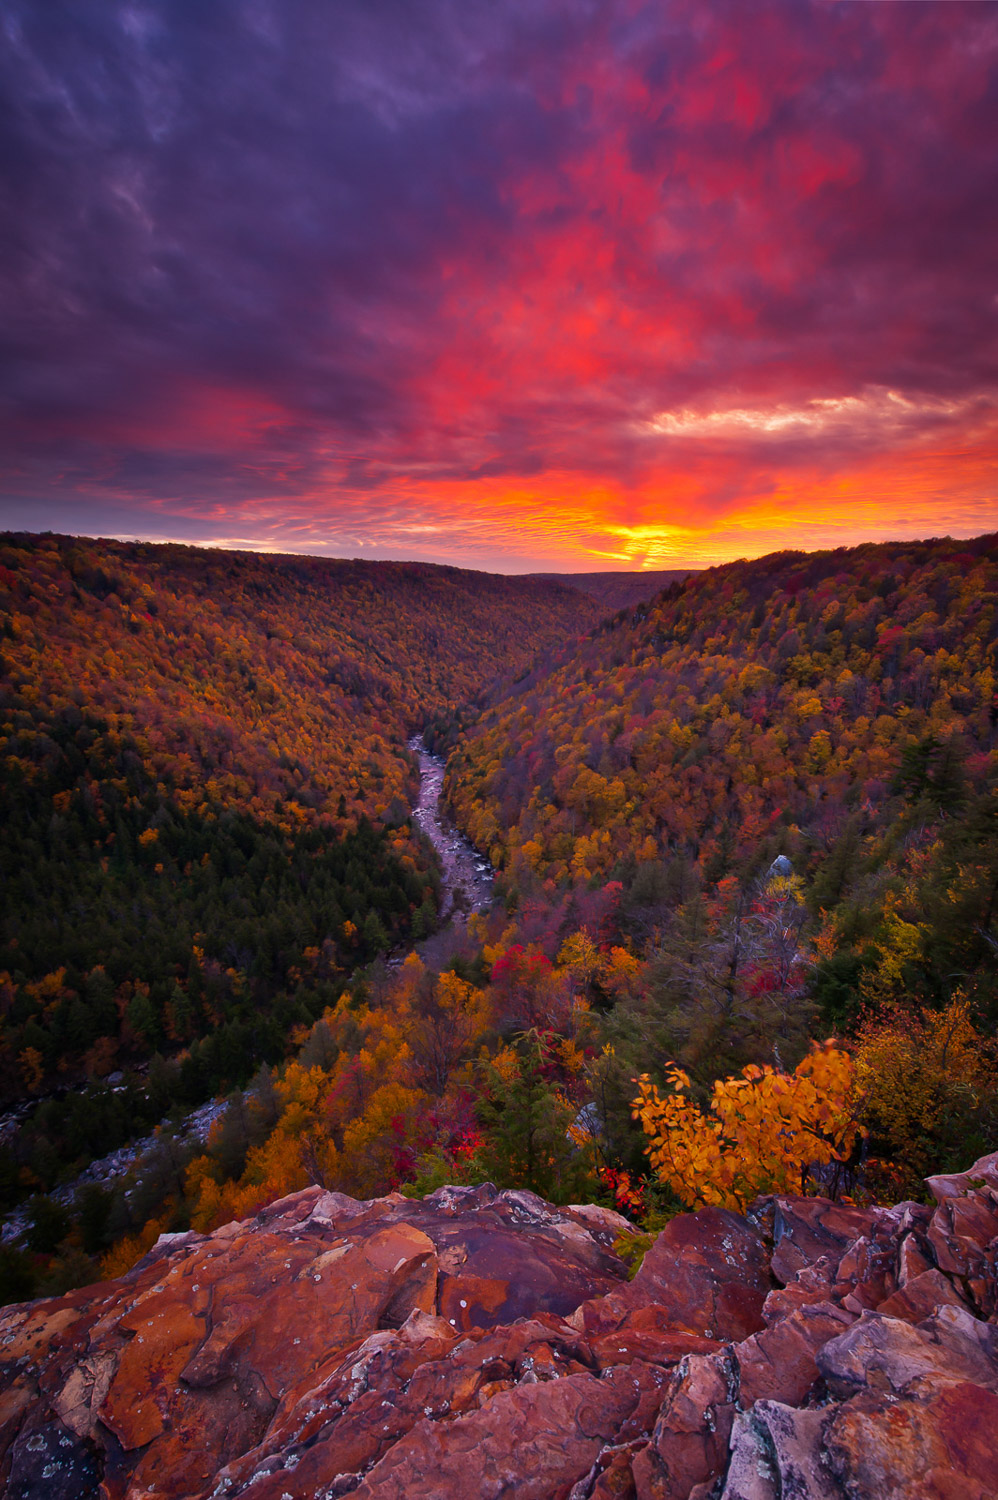 A fiery October sunset captured over Blackwater Canyon in the Allegheny Mountains of West Virginia.